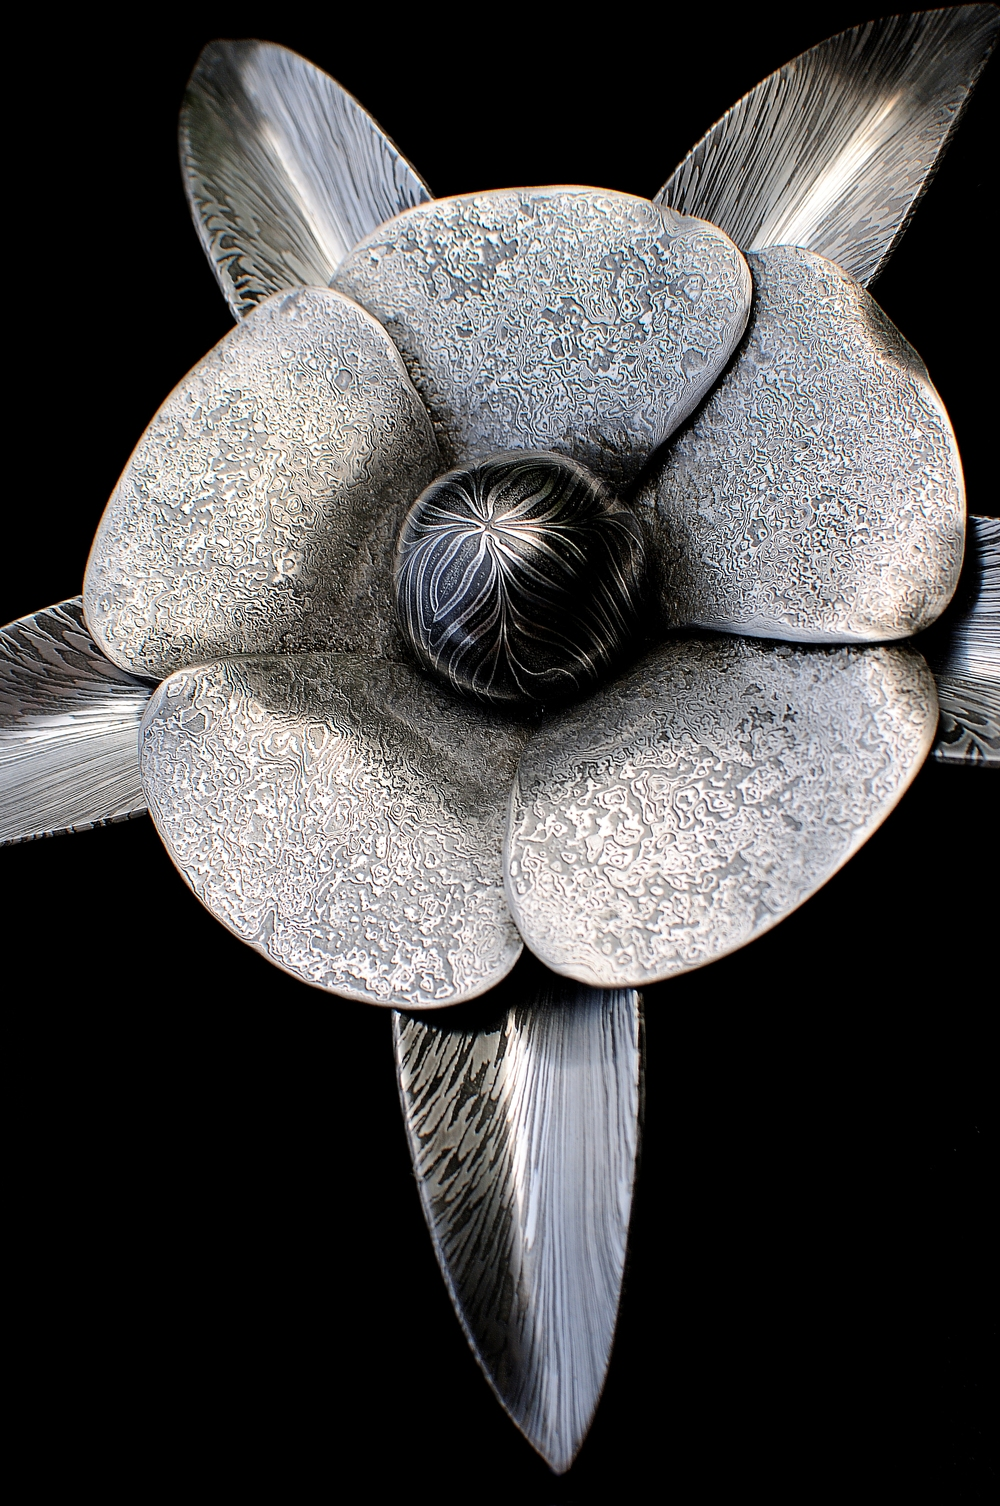 Pattern-welded Flower by Mick Maxen - AVAILABLE (set on driftwood with smaller flowers) - £2400. (This piece won the Reserve Show Champion at the Dorset Show).